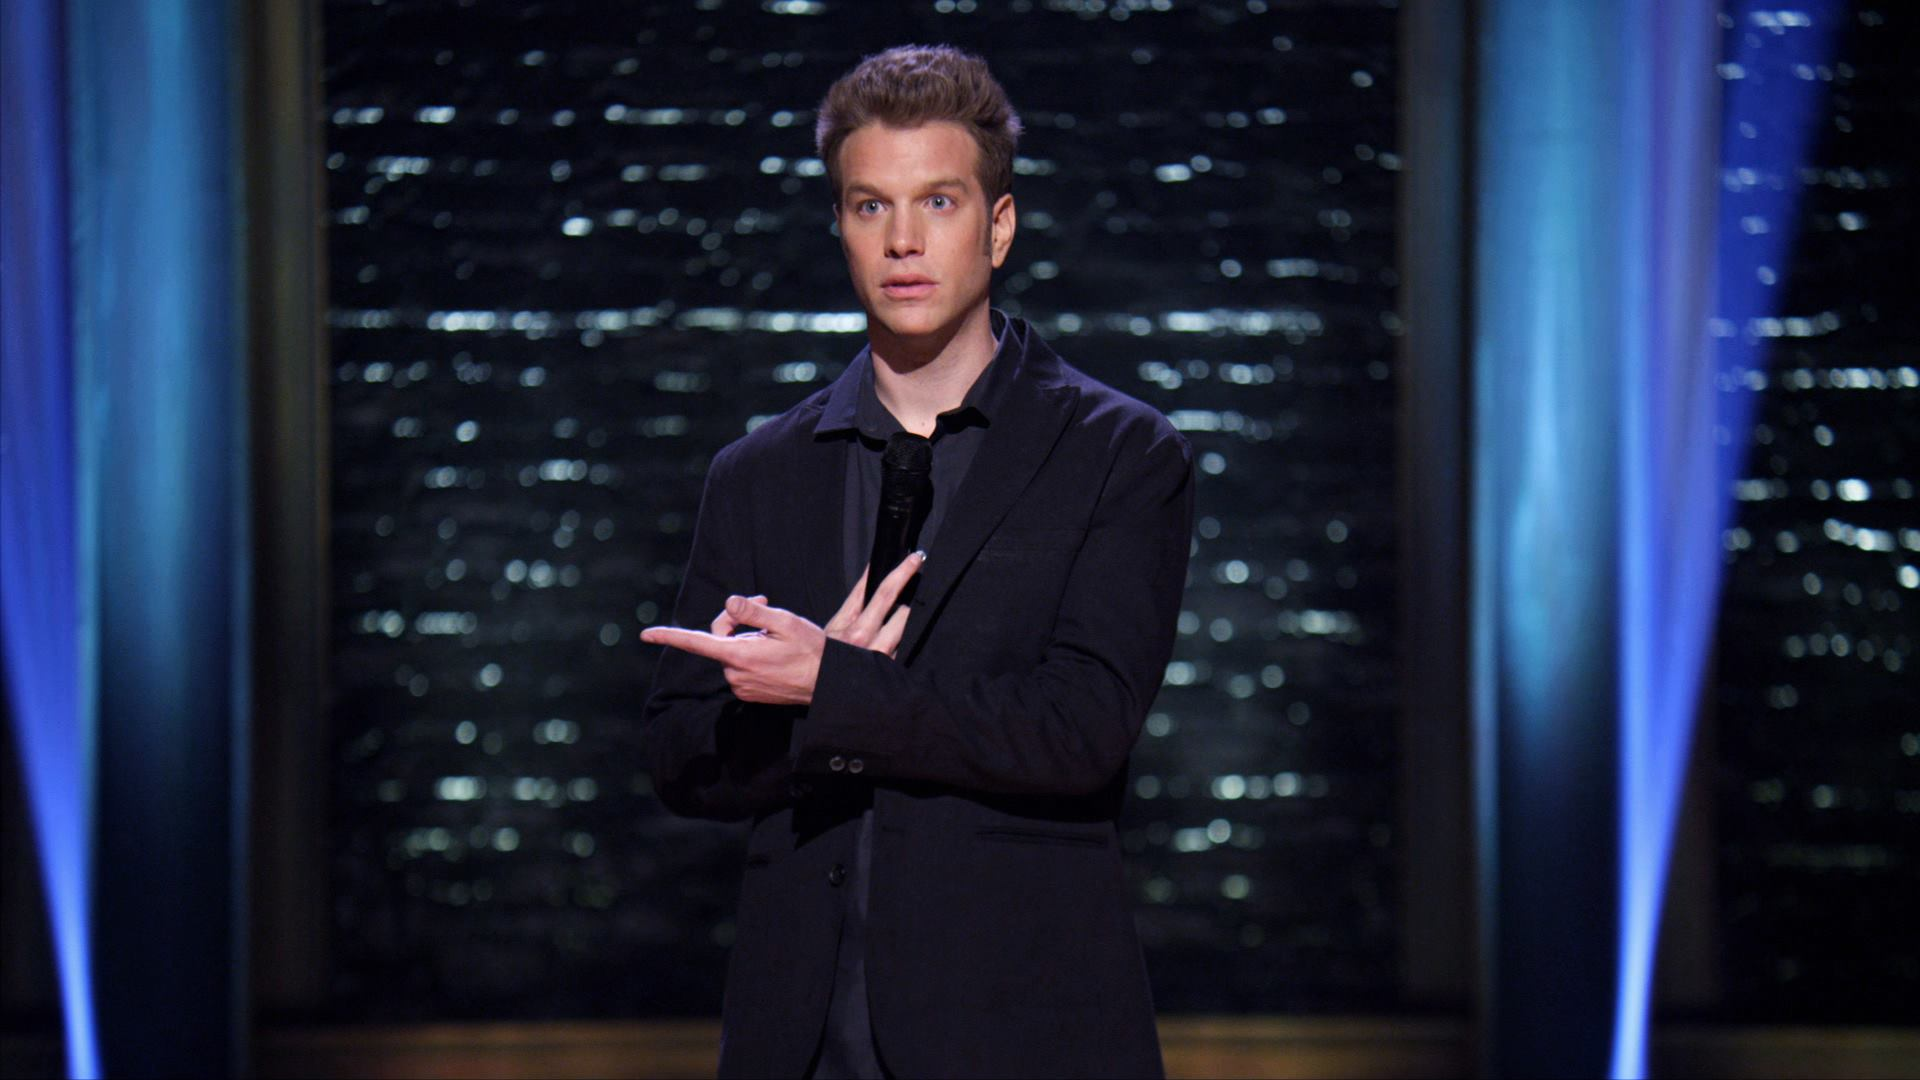 facebook.com   Comedian Anthony Jeselnik didn't hold back any punches when performing at Weill Hall, making sure every student and audience member got theirs.